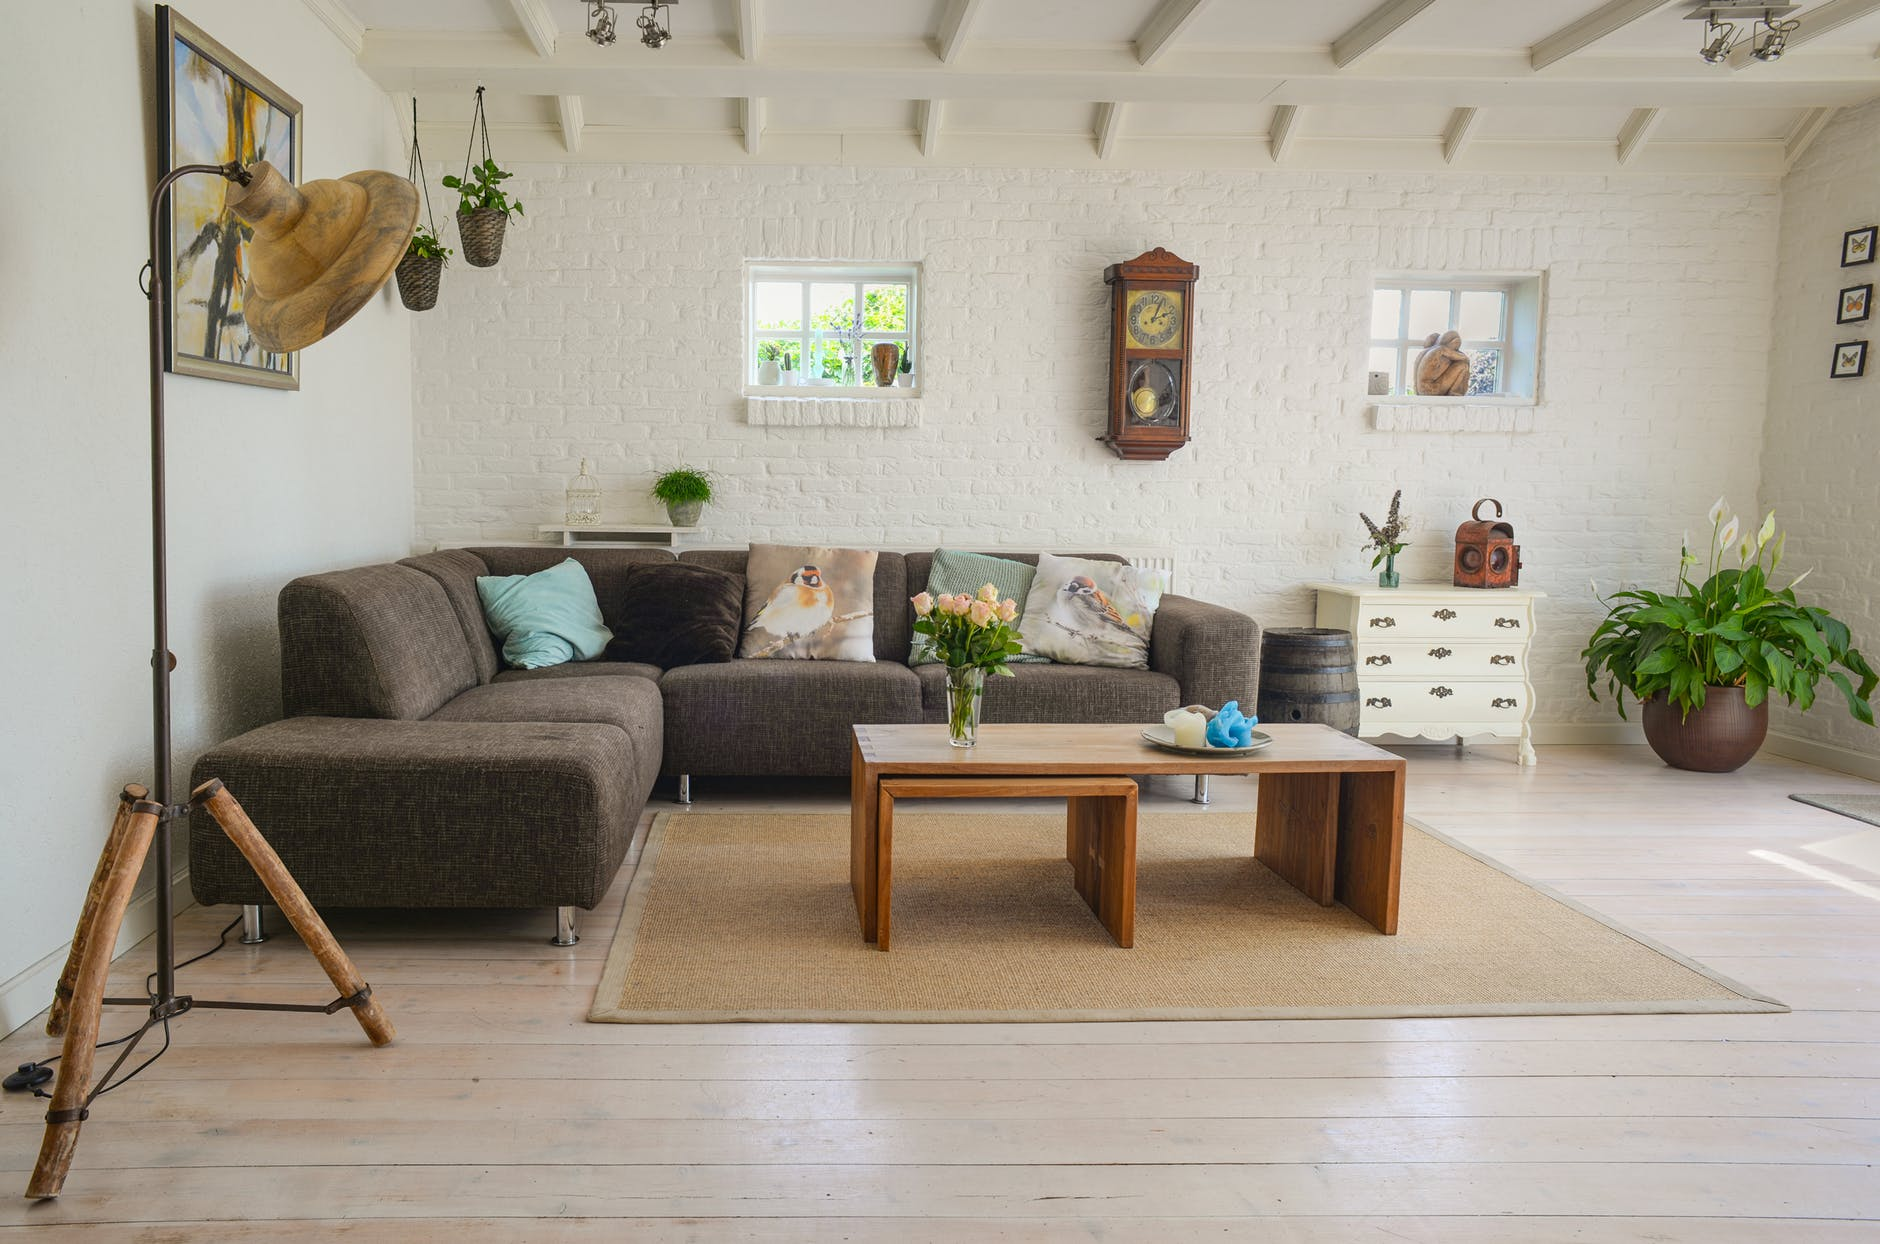 How to Transform Your Home into a Personal Sanctuary